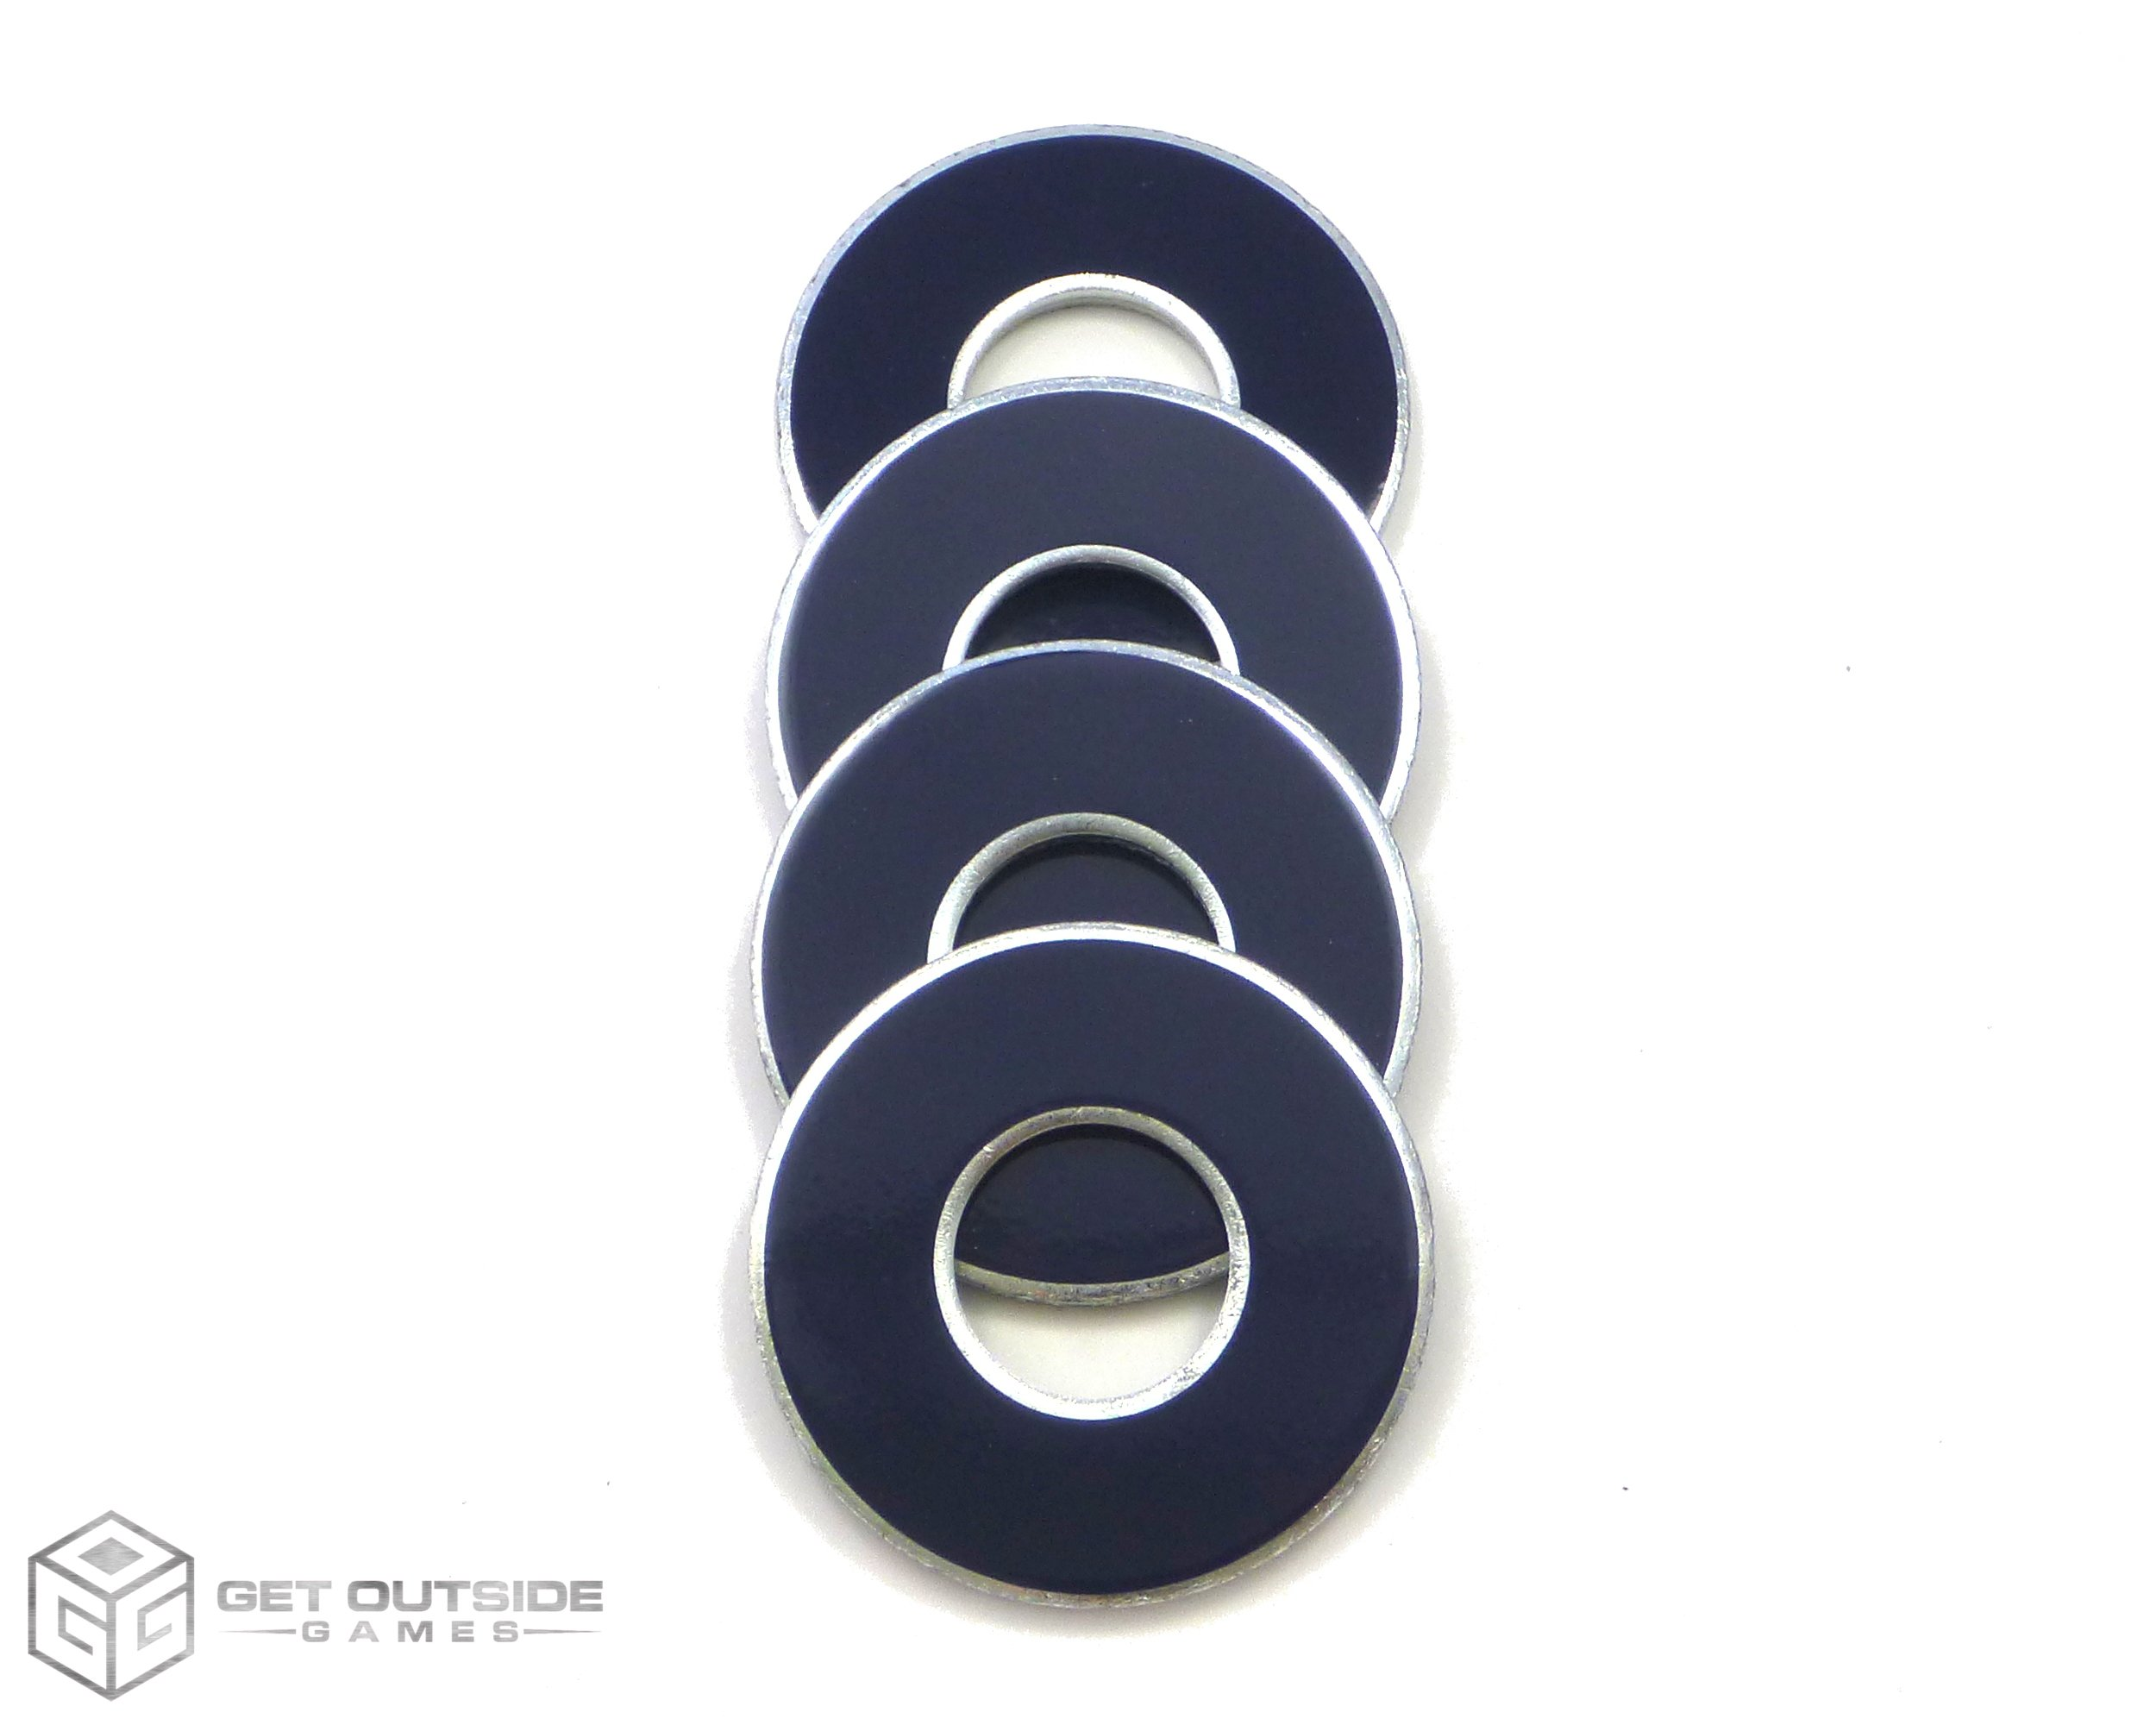 Get Outside Games 4 VVashers - Washer Toss/Washer Game Washers (Blue-Navy, 4 VVashers)